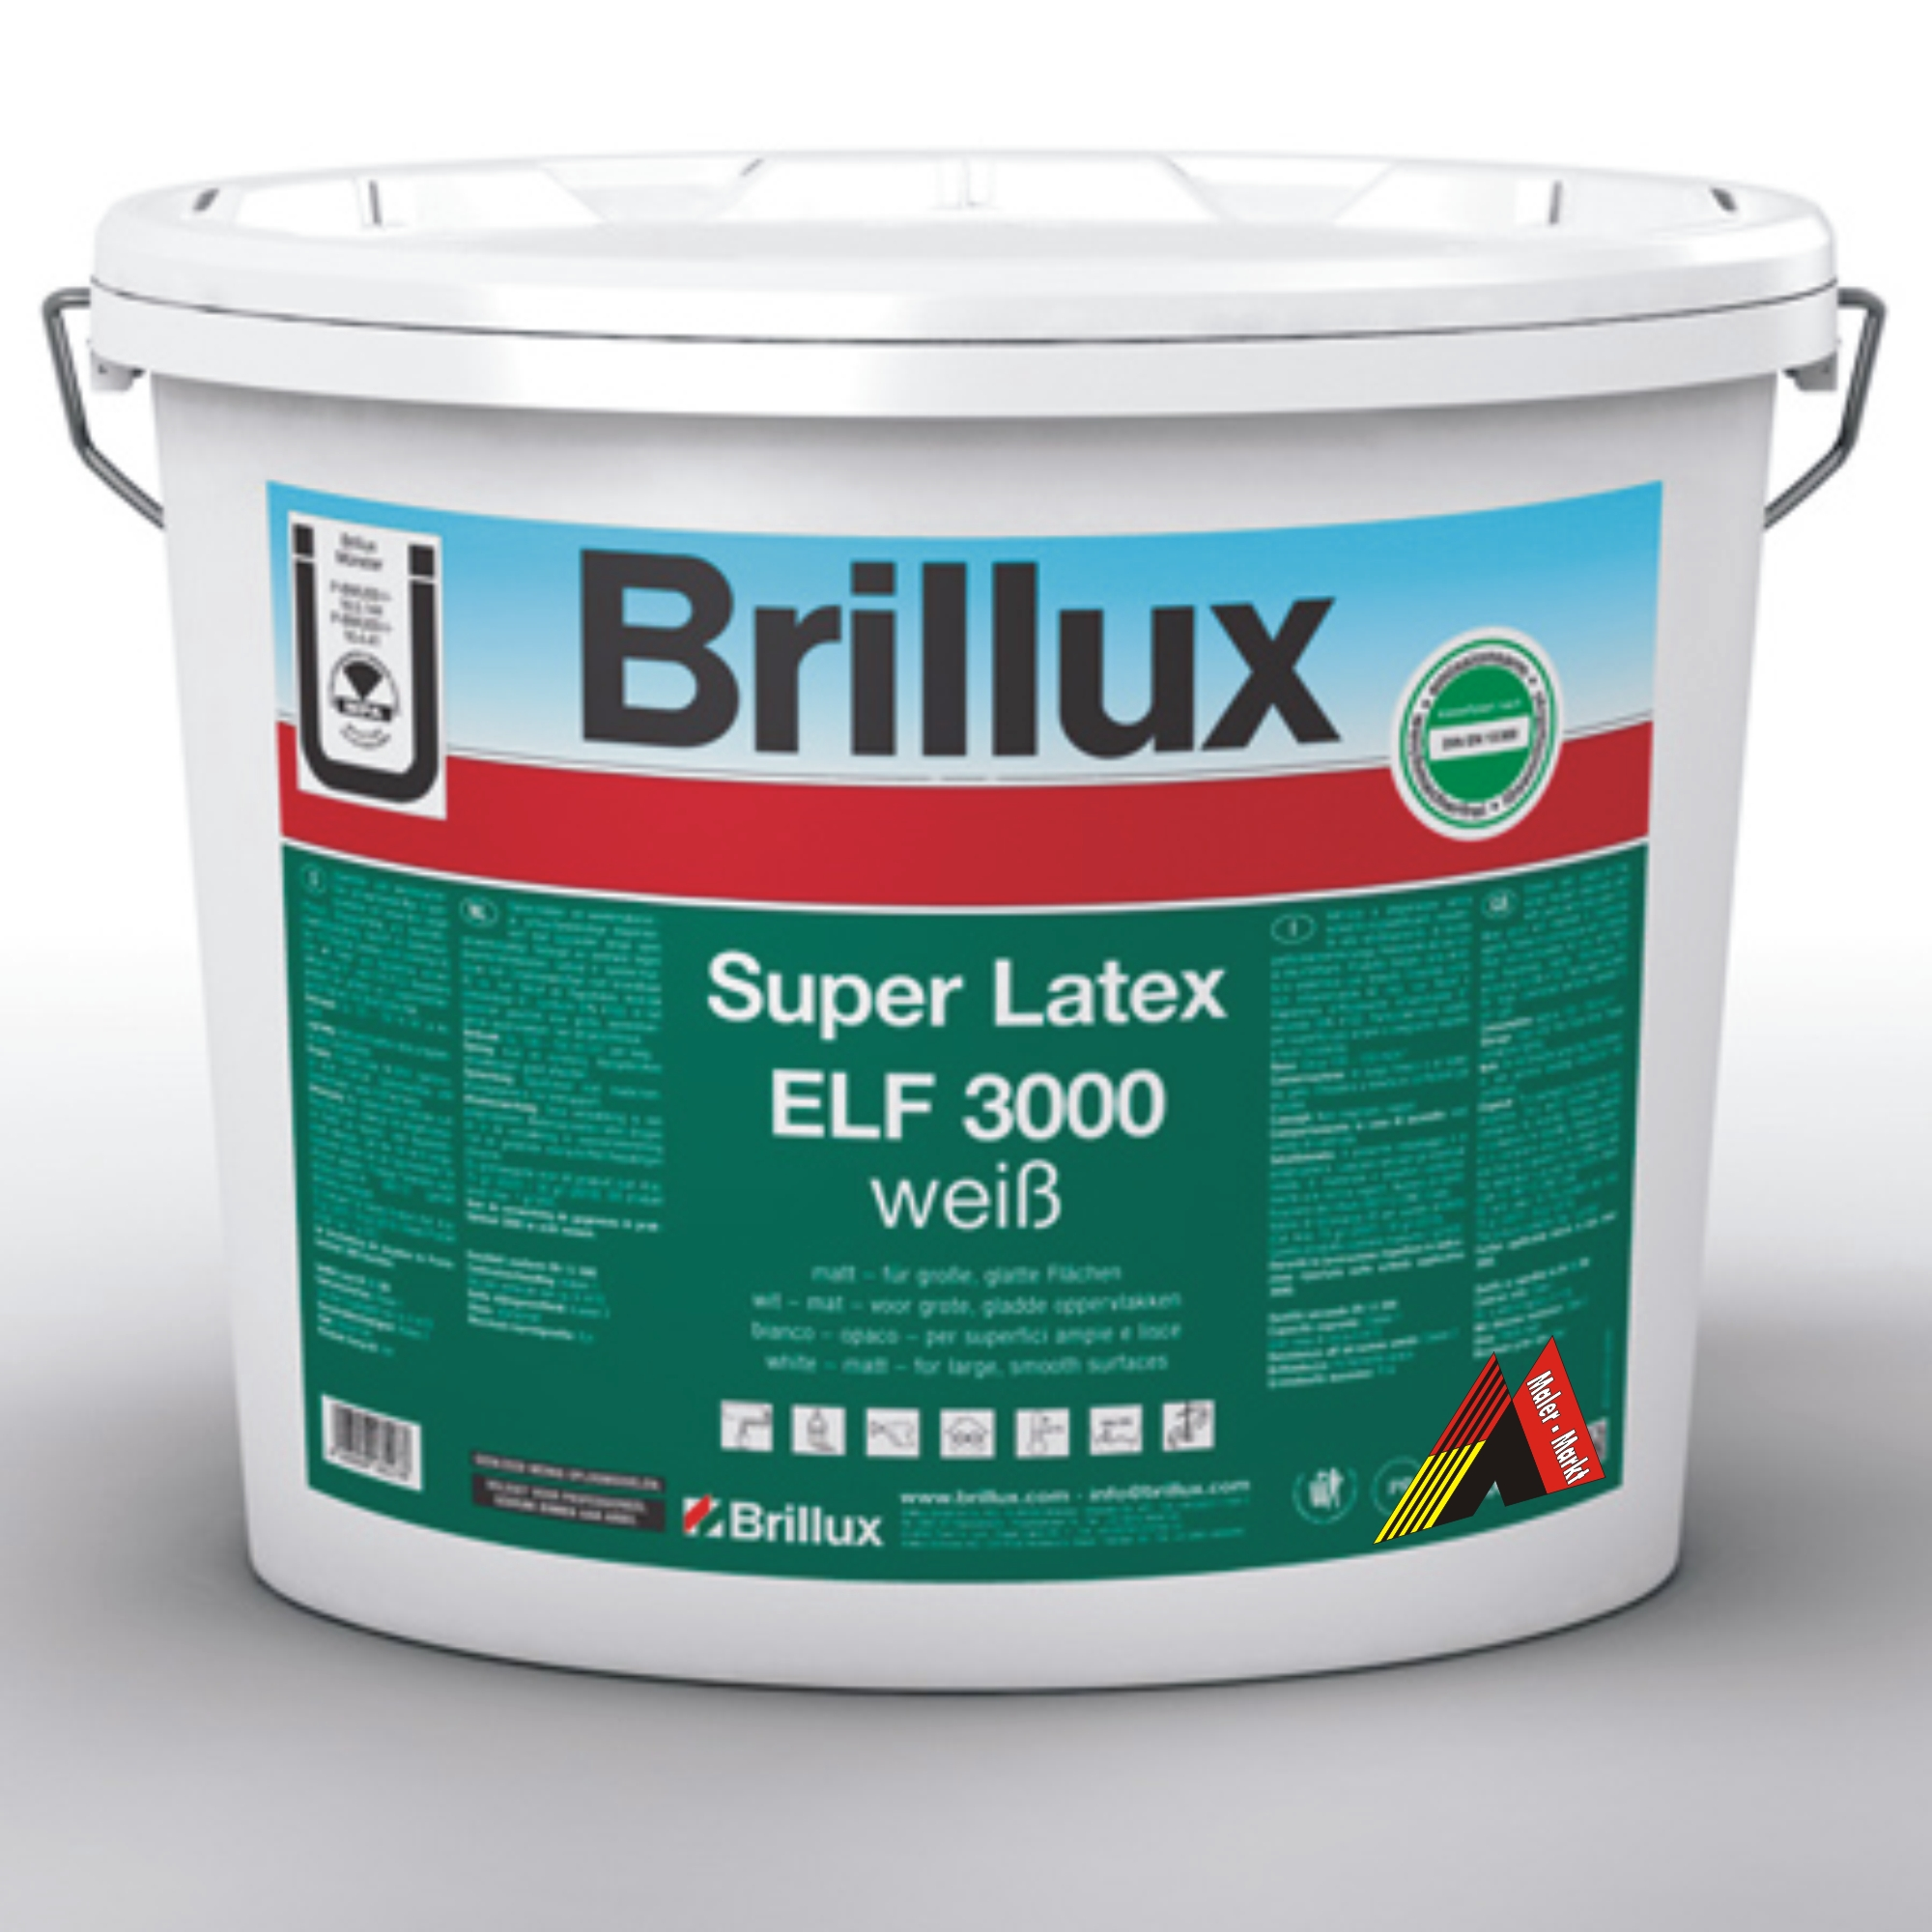 brillux super latex elf 3000 10 litre euro per litre. Black Bedroom Furniture Sets. Home Design Ideas